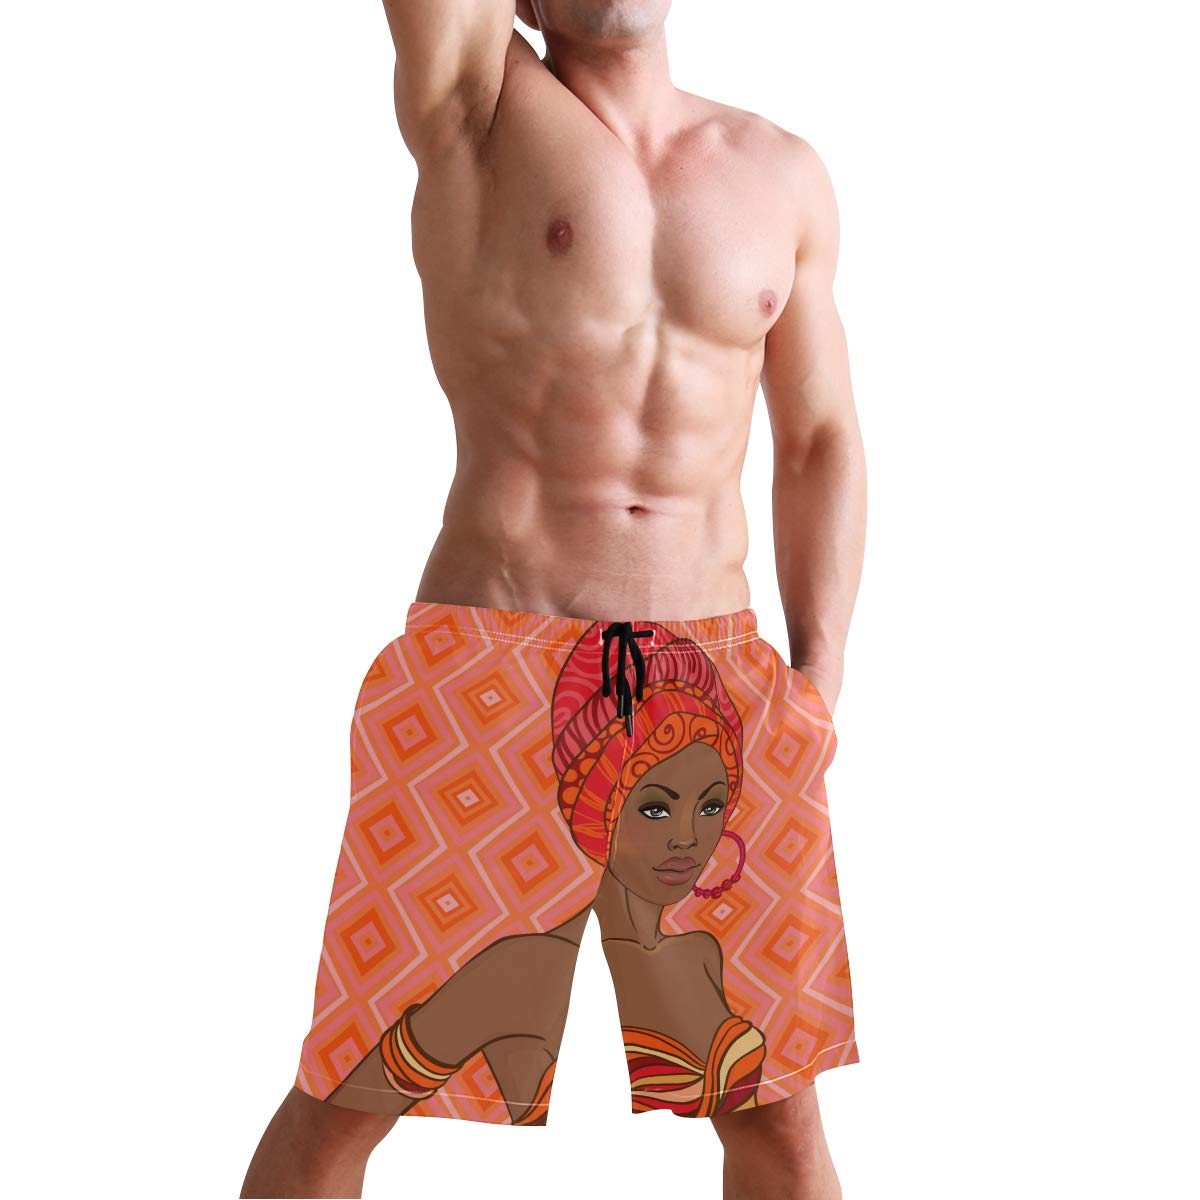 JERECY Mens Swim Trunks African Girl with Geometric Print Quick Dry Board Shorts with Drawstring and Pockets